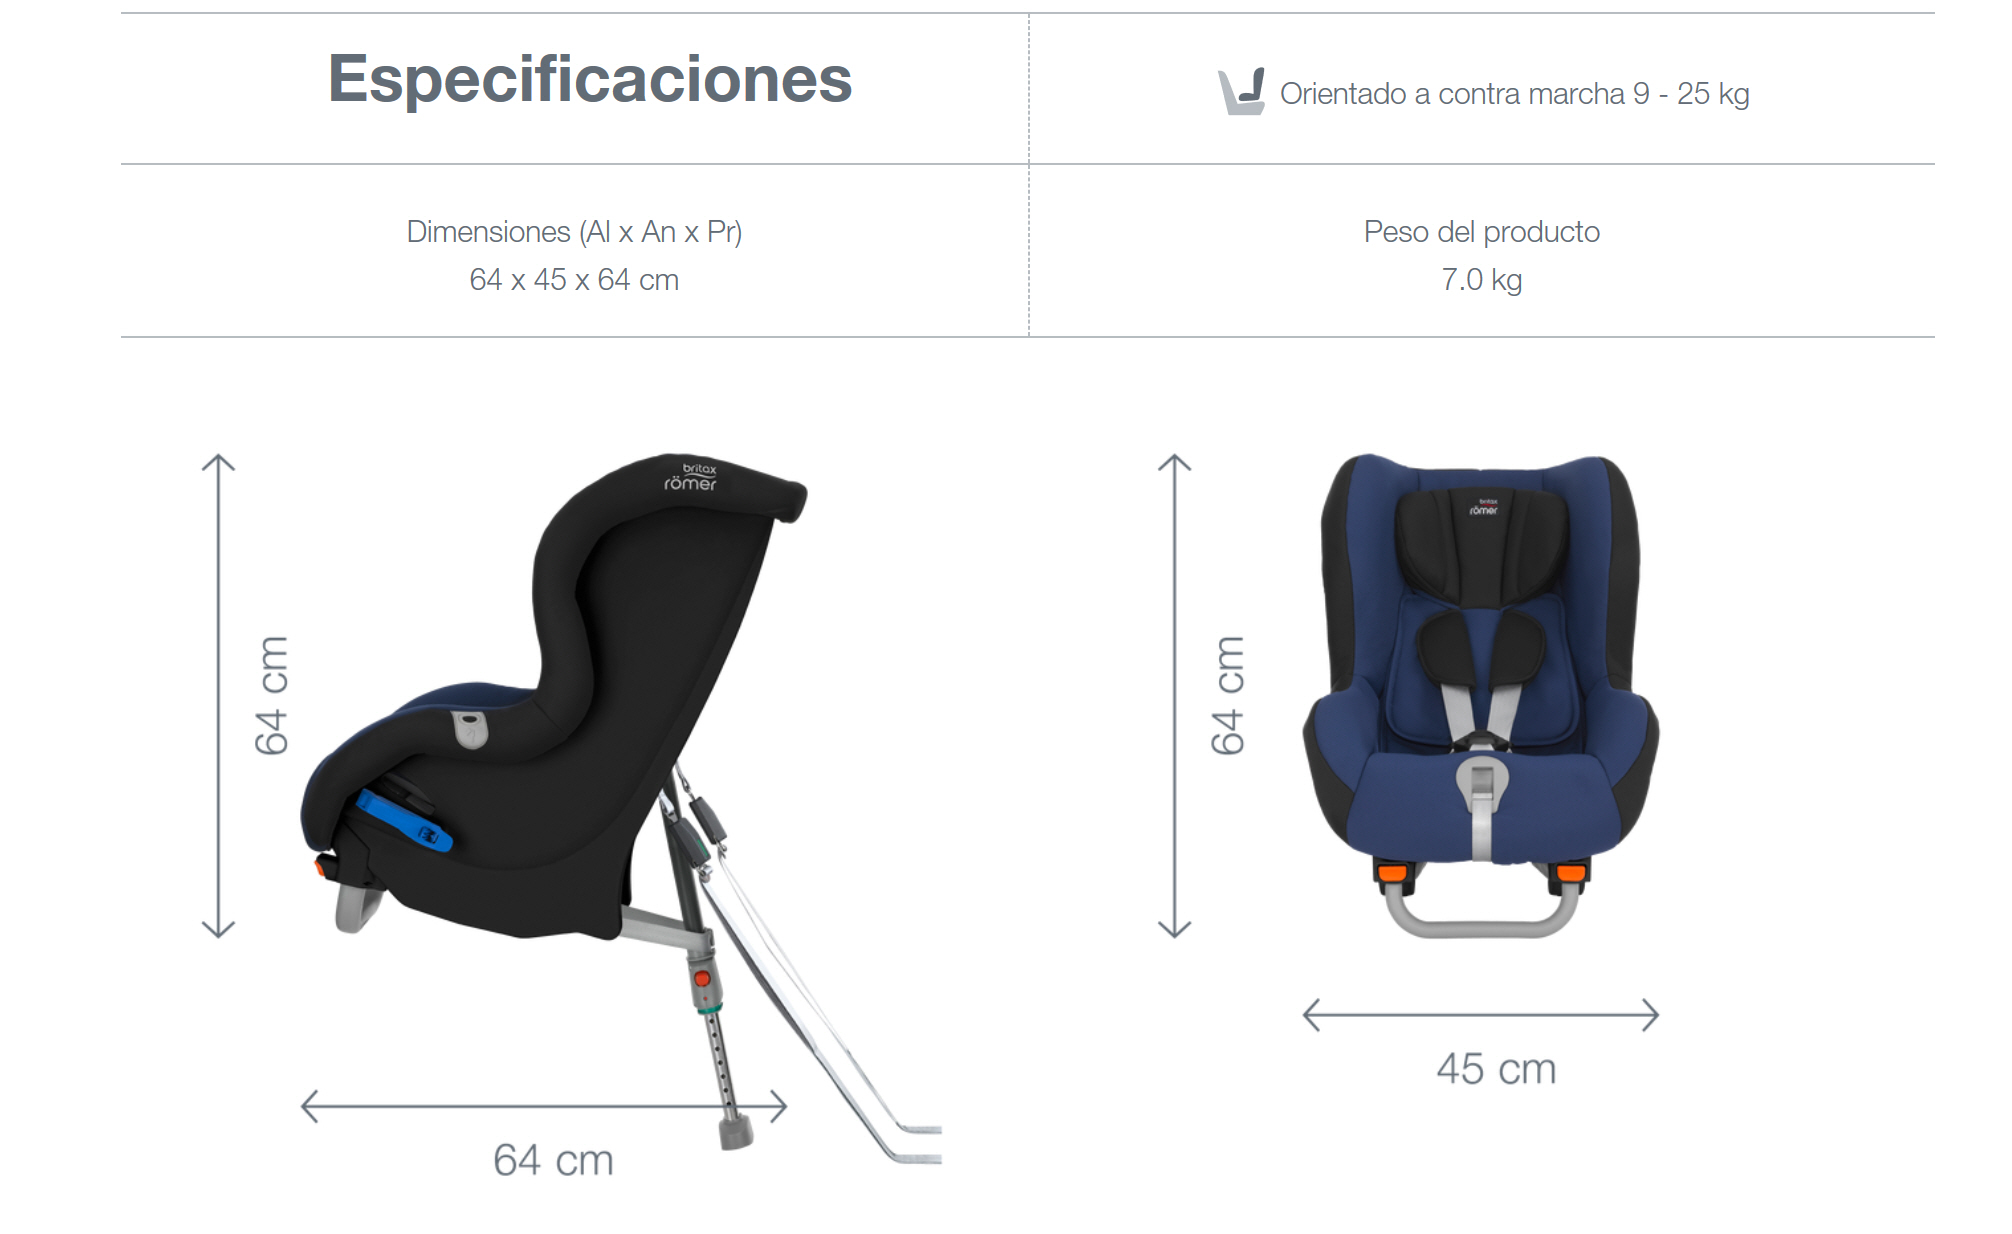 ESPECIFICACIONES TECNICAS MAX WAY